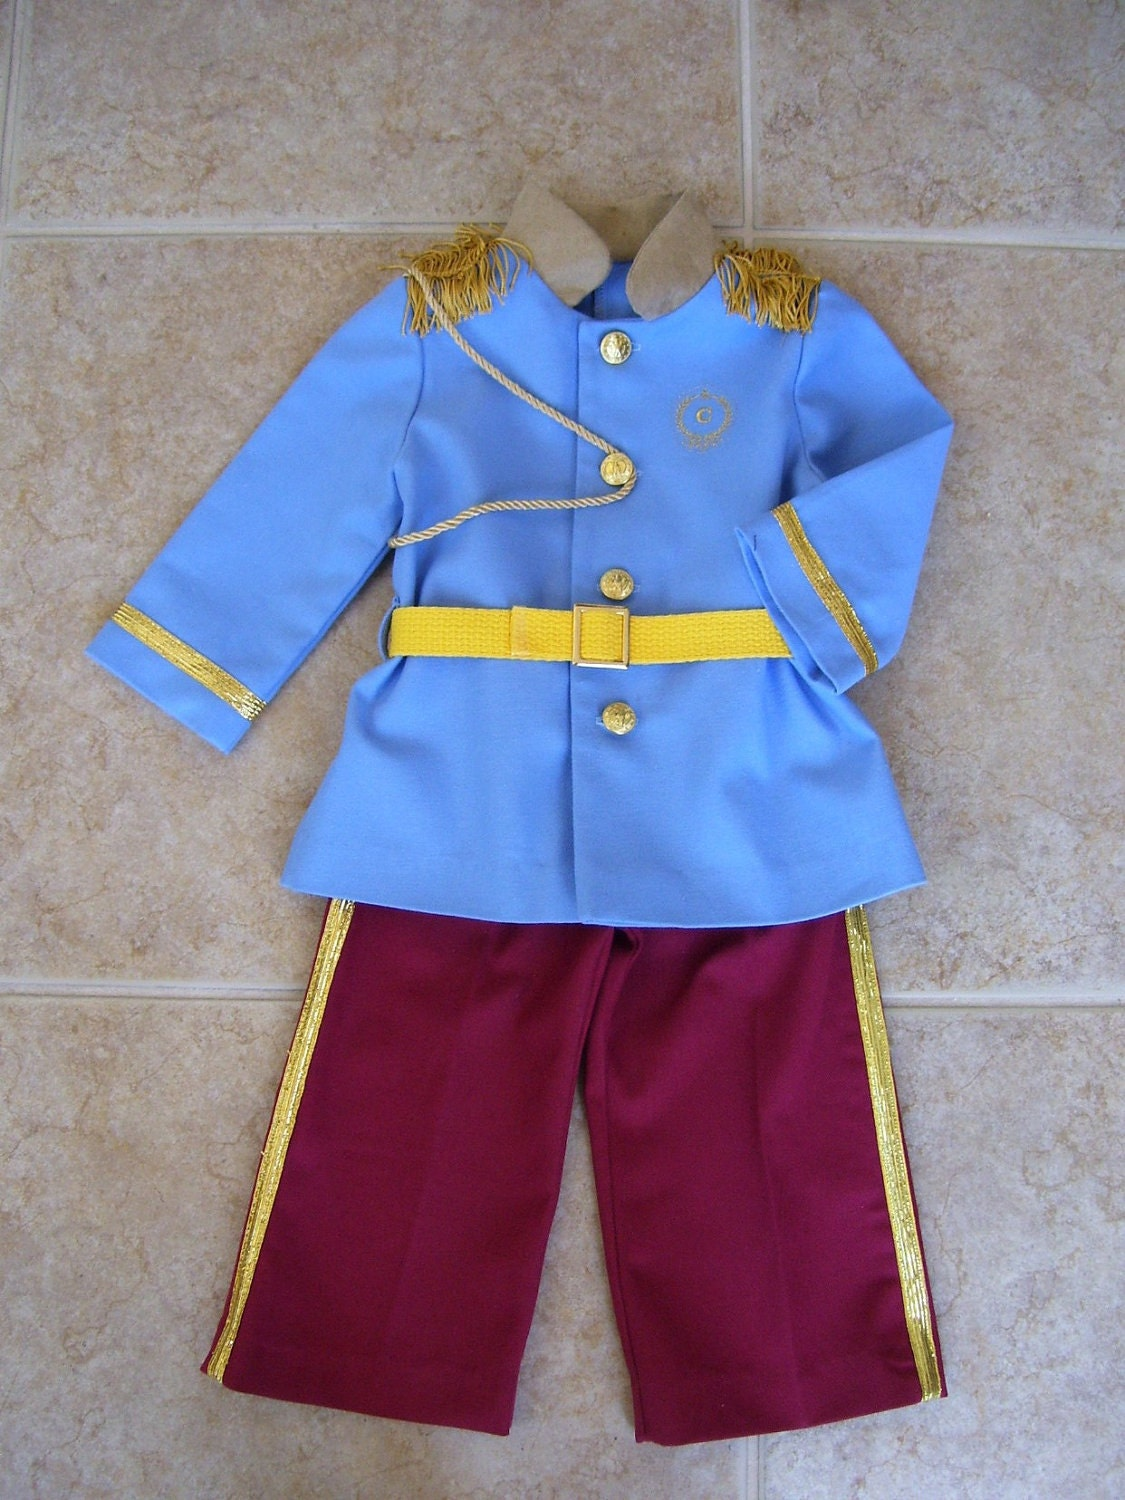 prince charming children s costume sizes 12 months size